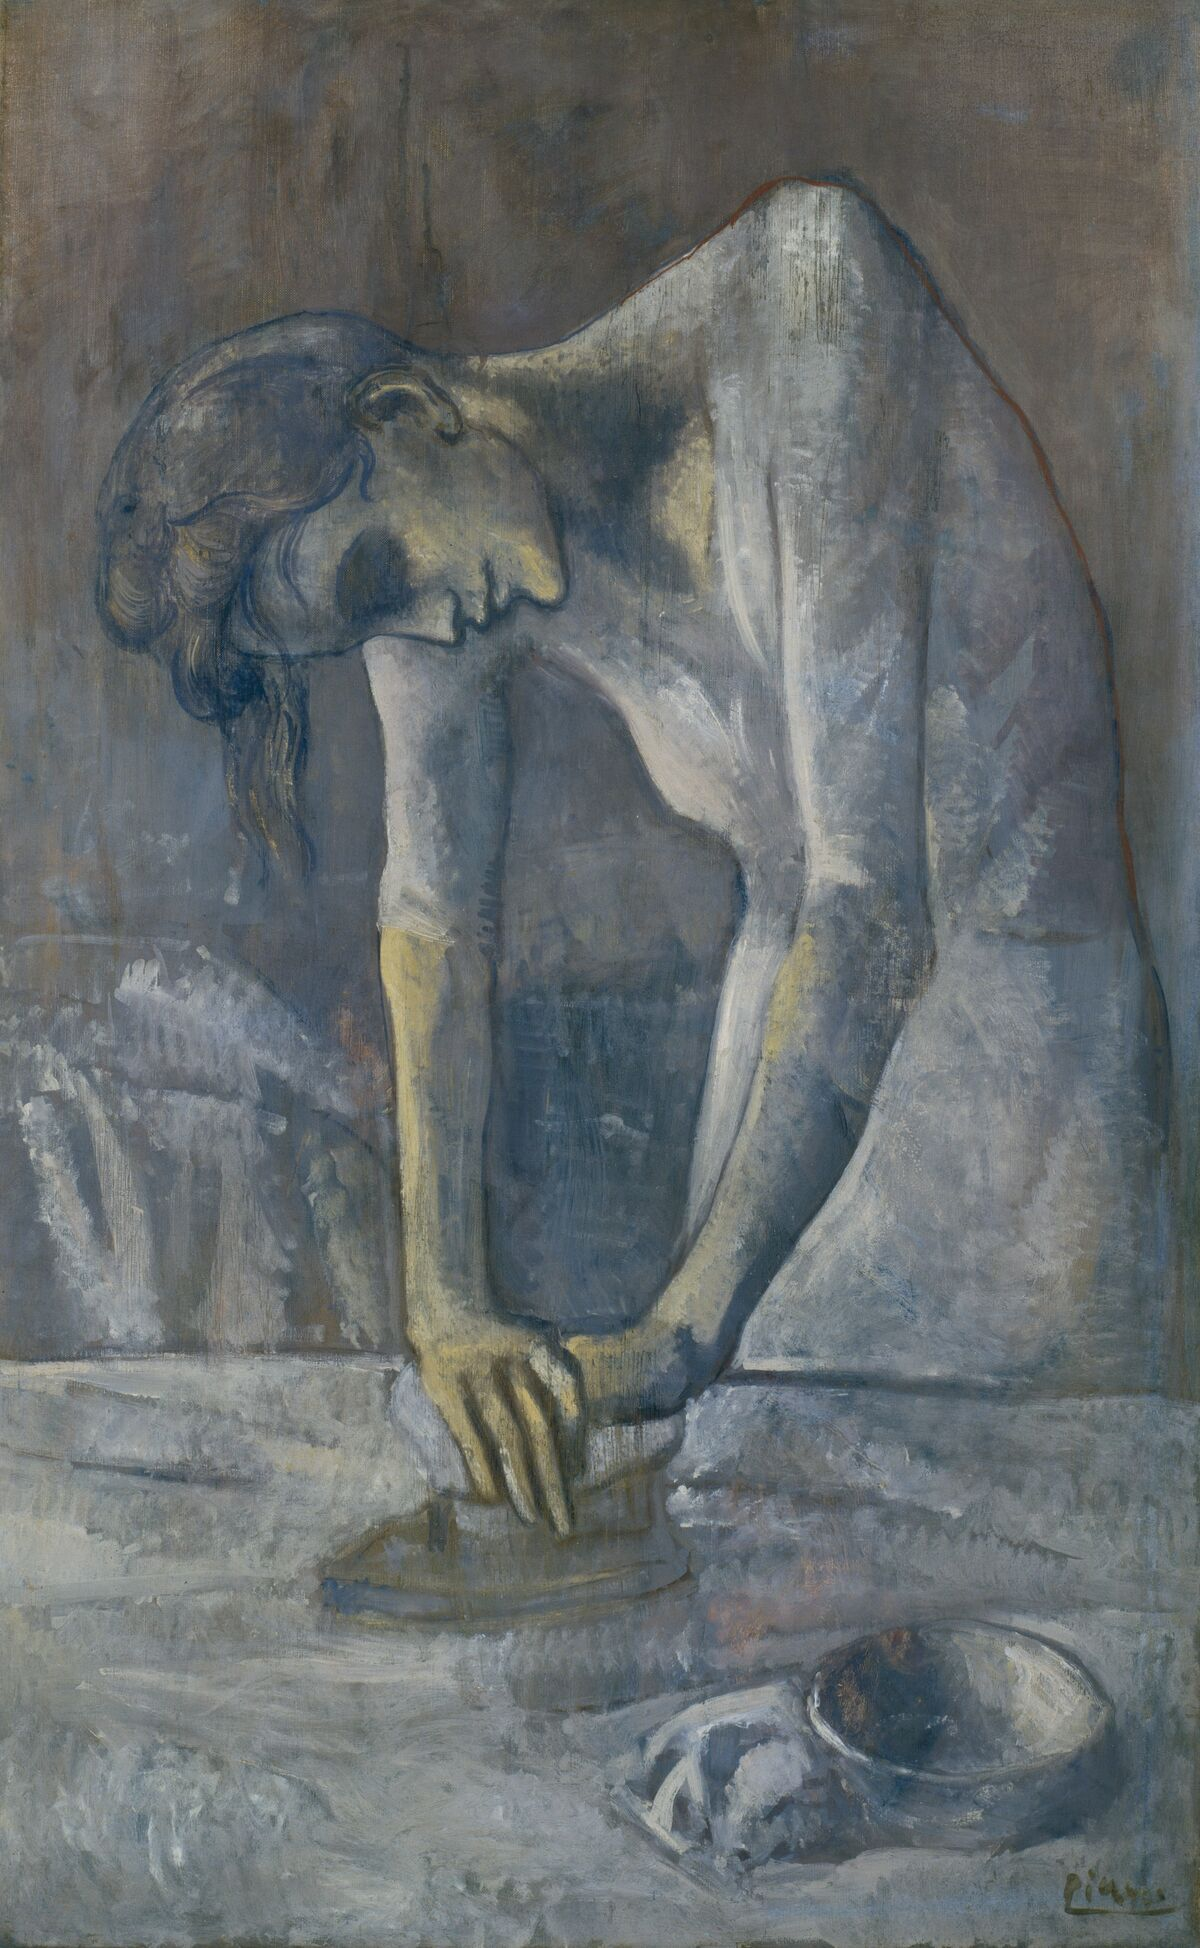 Pablo Picasso, Woman Ironing, 1904. © 2018 Estate of Pablo Picasso / Artists Rights Society (ARS), New York. Courtesy of the Solomon R. Guggenheim Museum, New York.